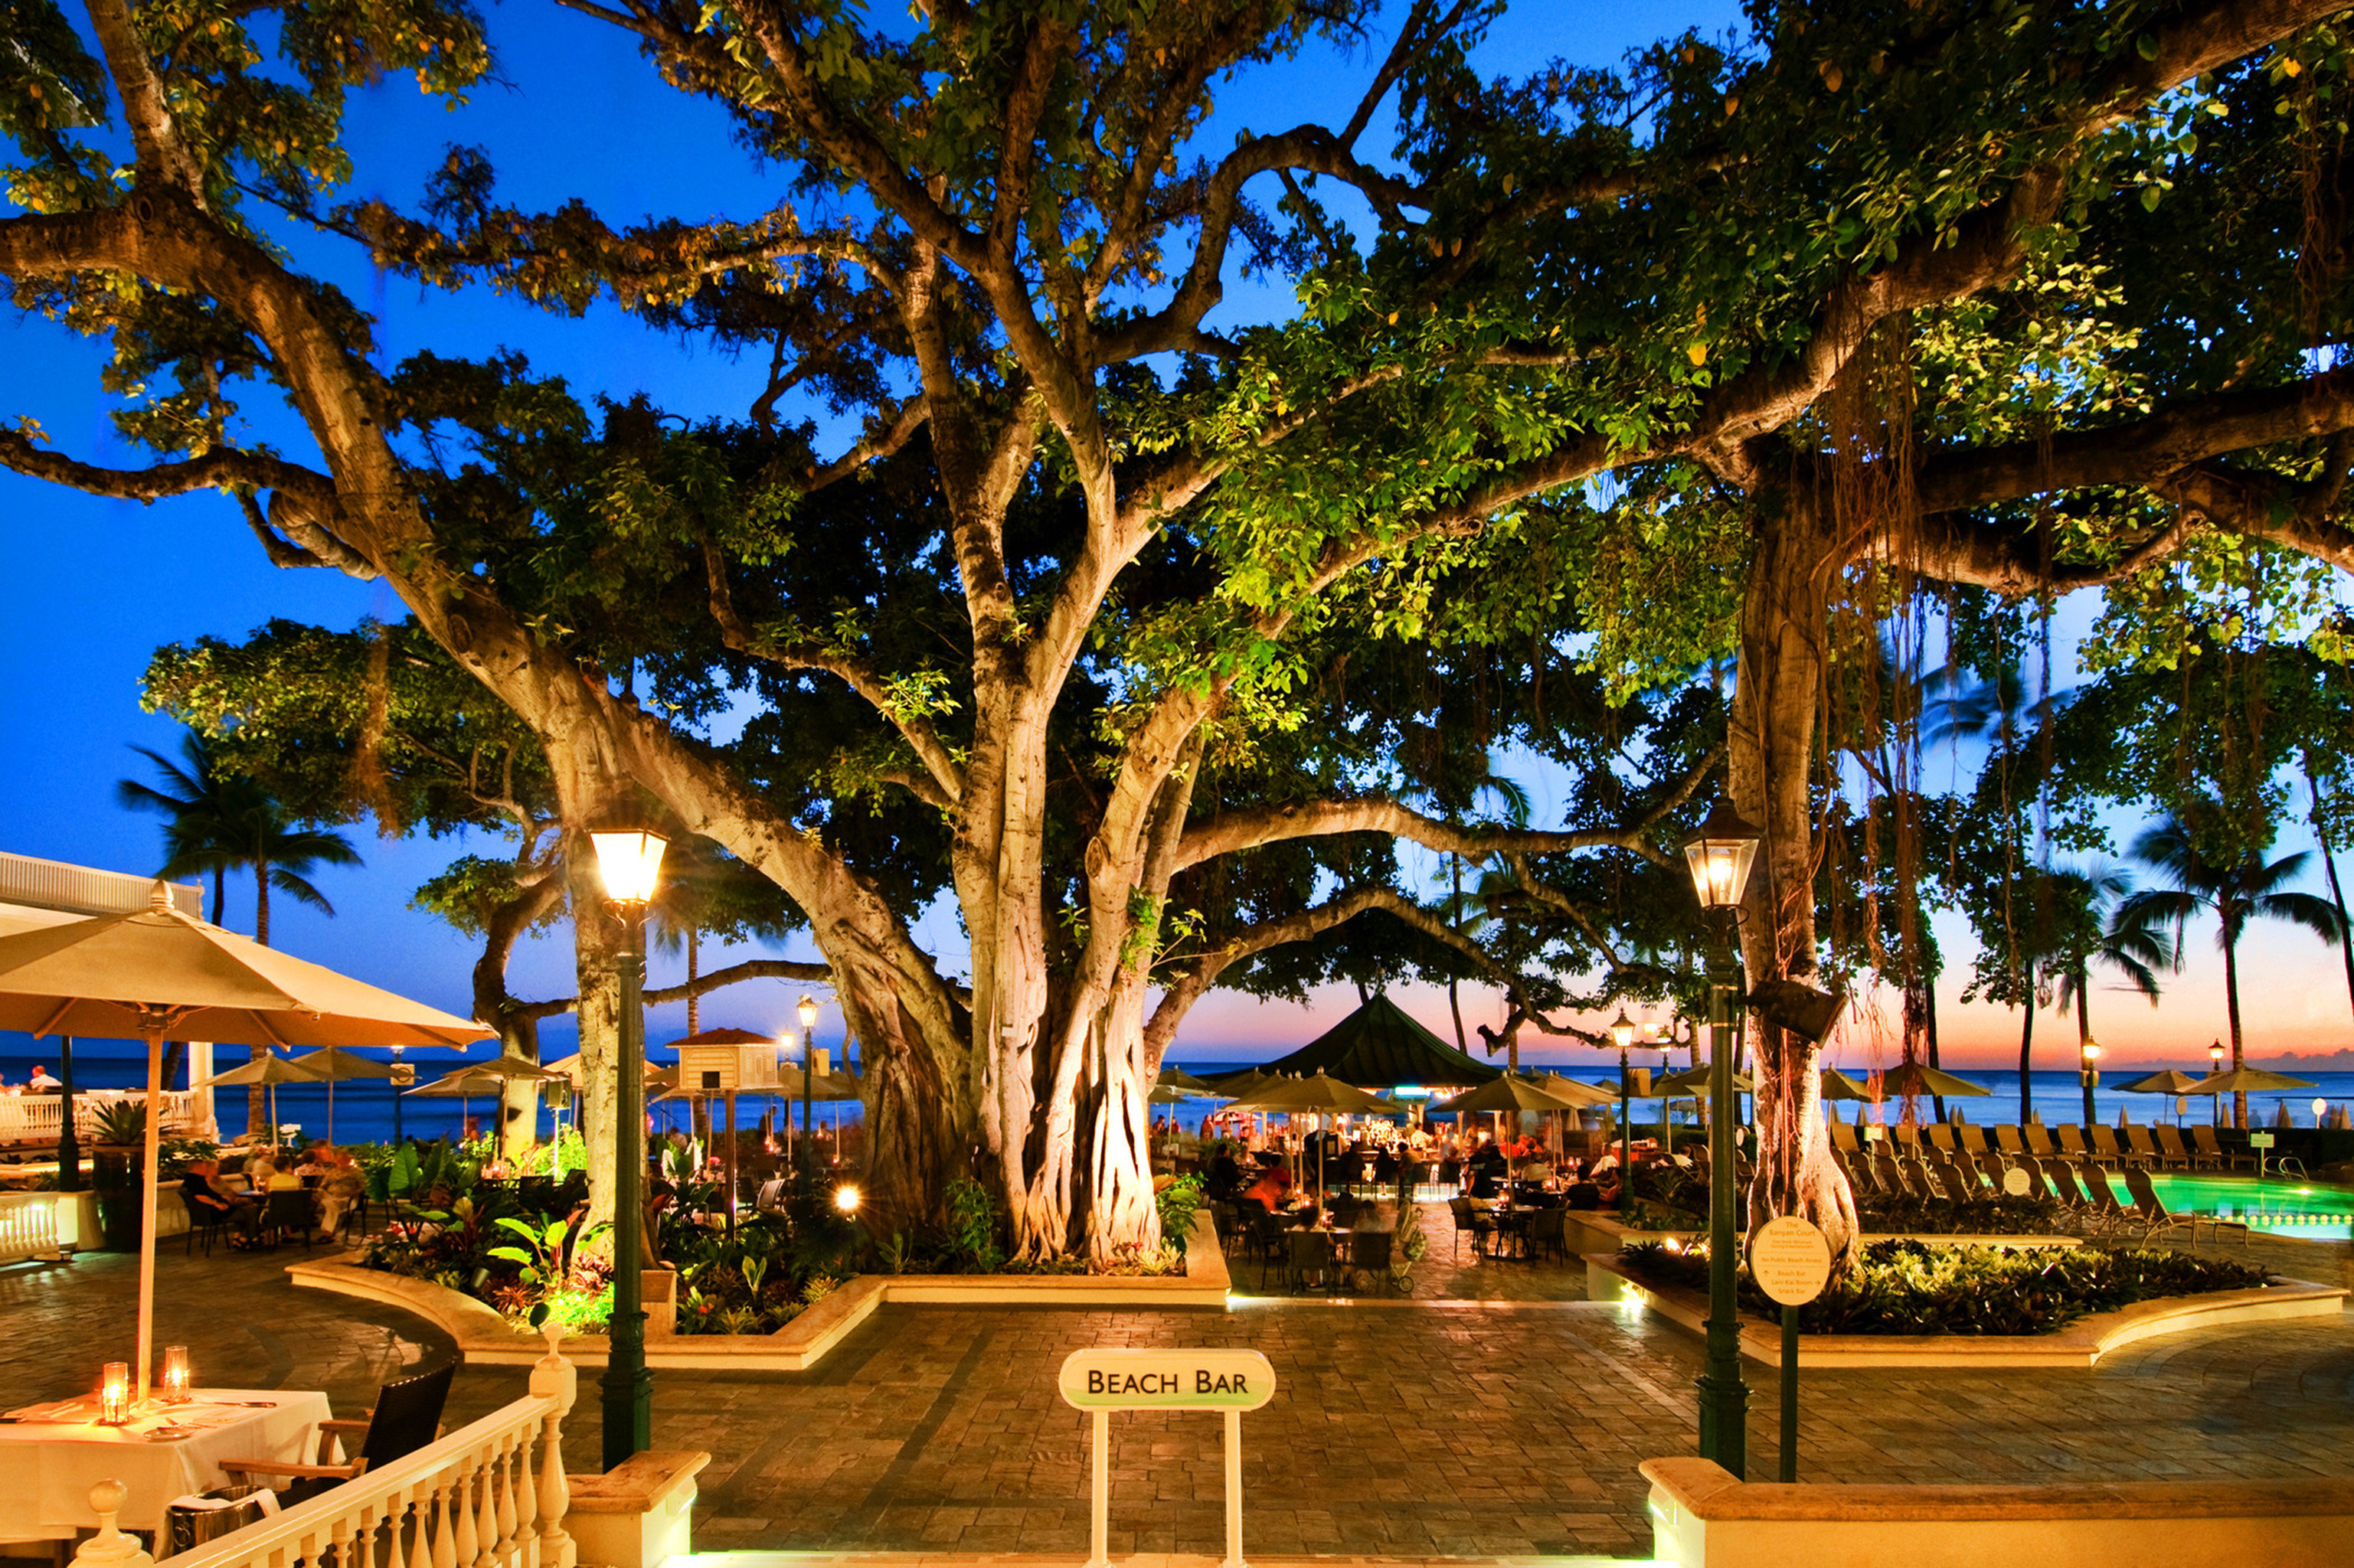 Bar Lounge Nightlife Outdoors Play Resort Scenic views tree arecales woody plant evening plaza plant